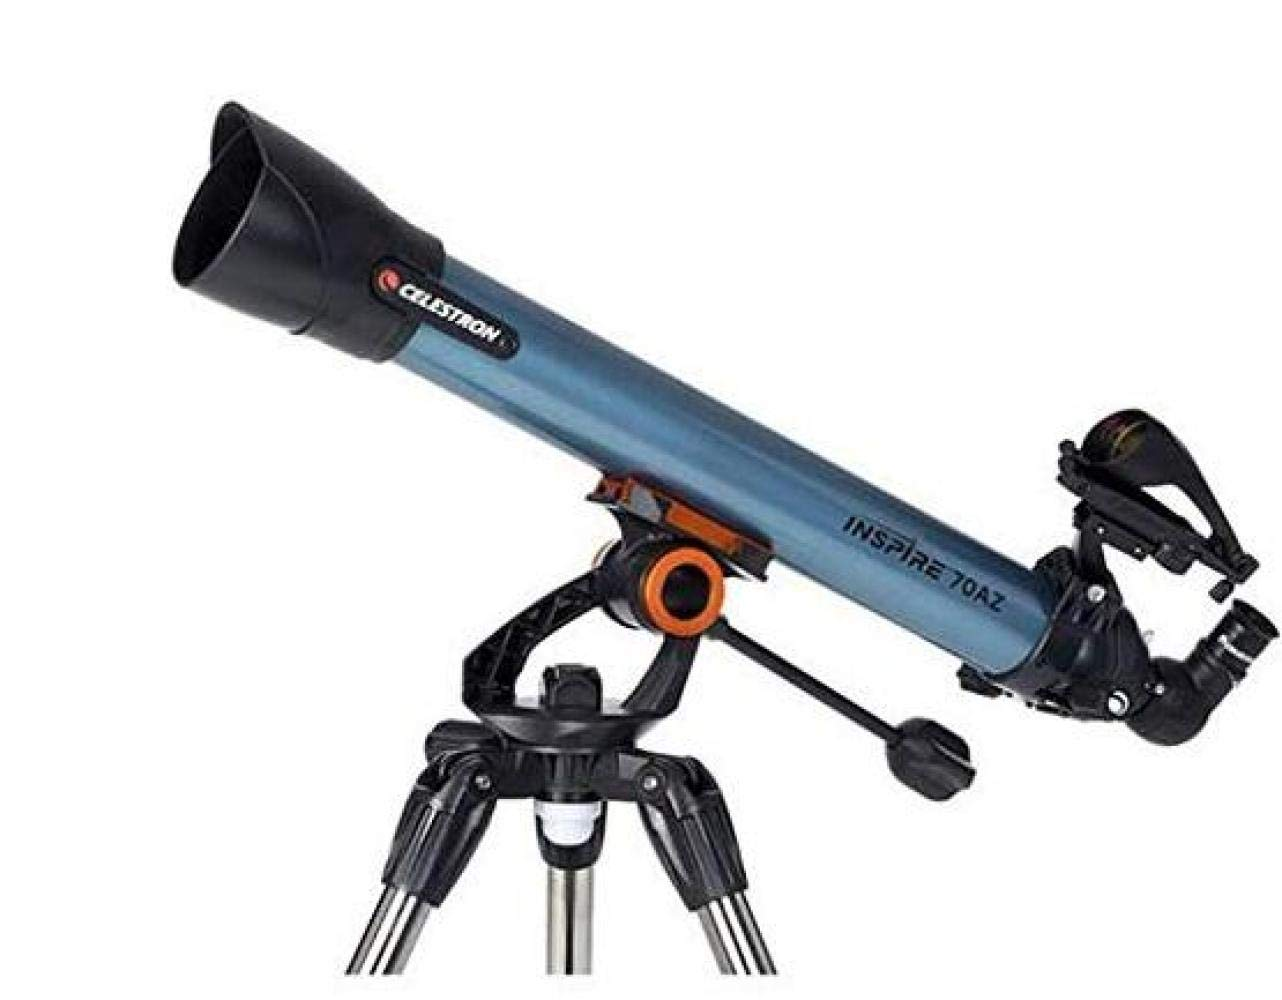 CTO Astronomical Telescope Astronomy Mobile Phone Photo Apocalypse Hd Star Star Star Moon,A,Telescope by CTO (Image #7)